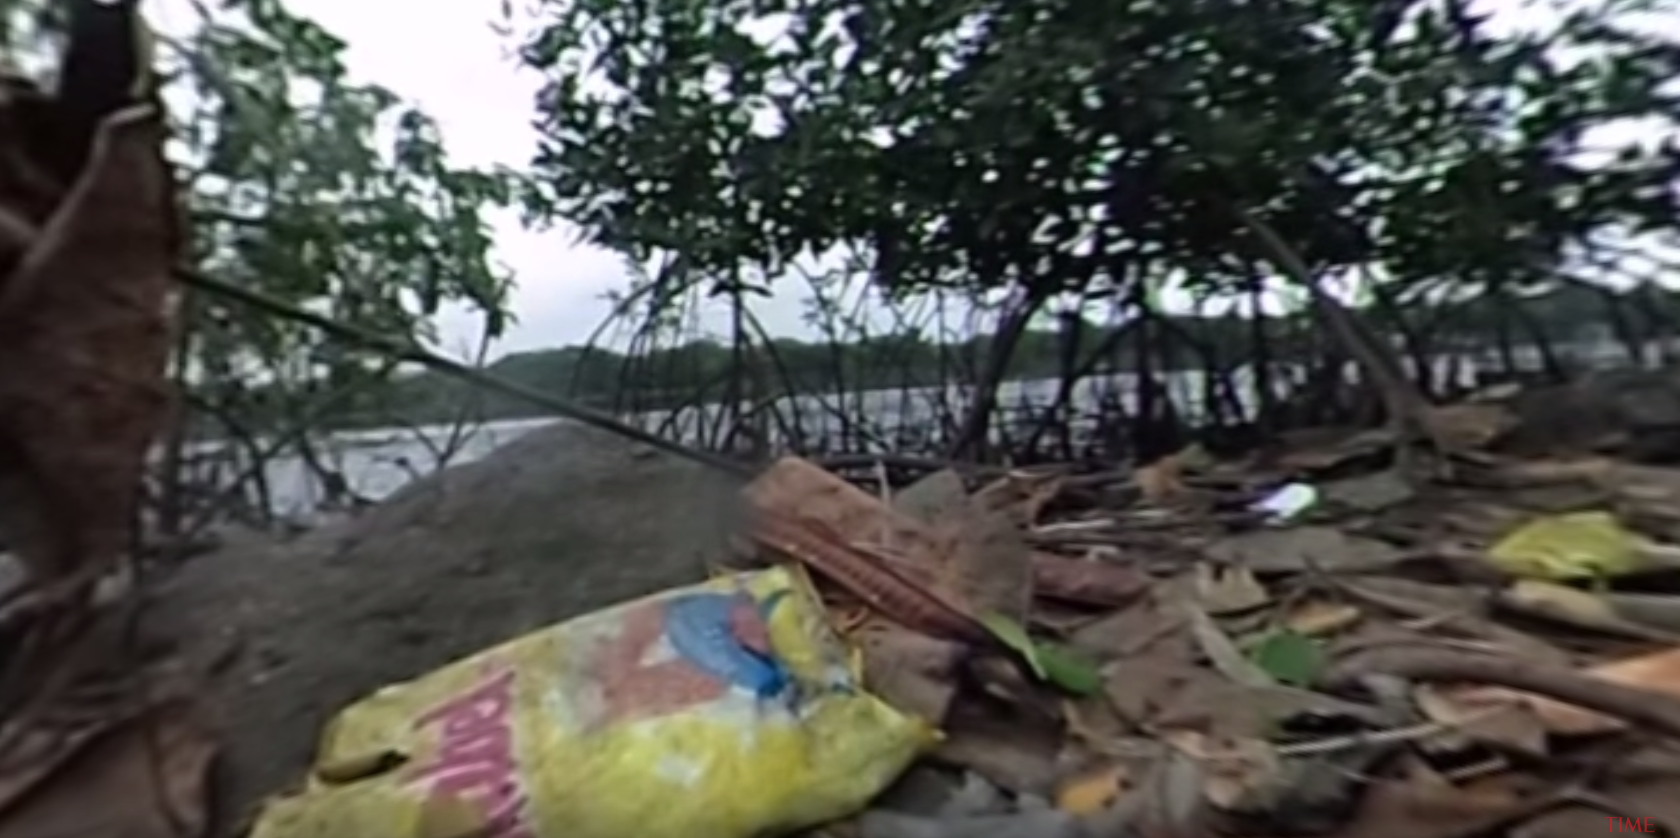 What Rio's pollution looks like on the ground.